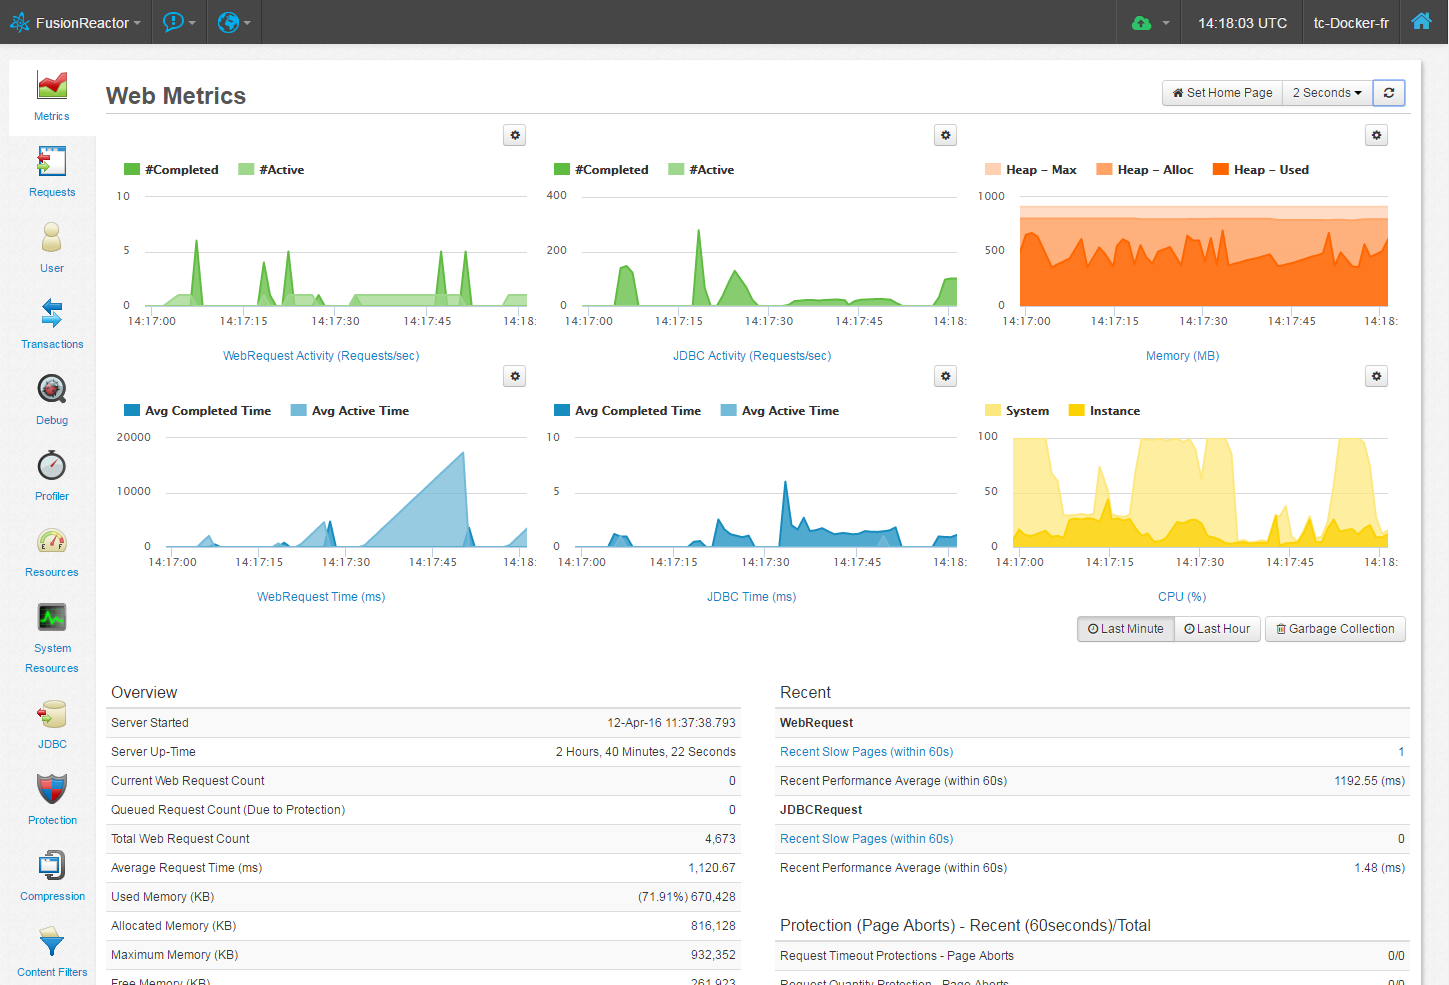 Java and Coldfusion server monitor: Fusion Reactor Web Metrics